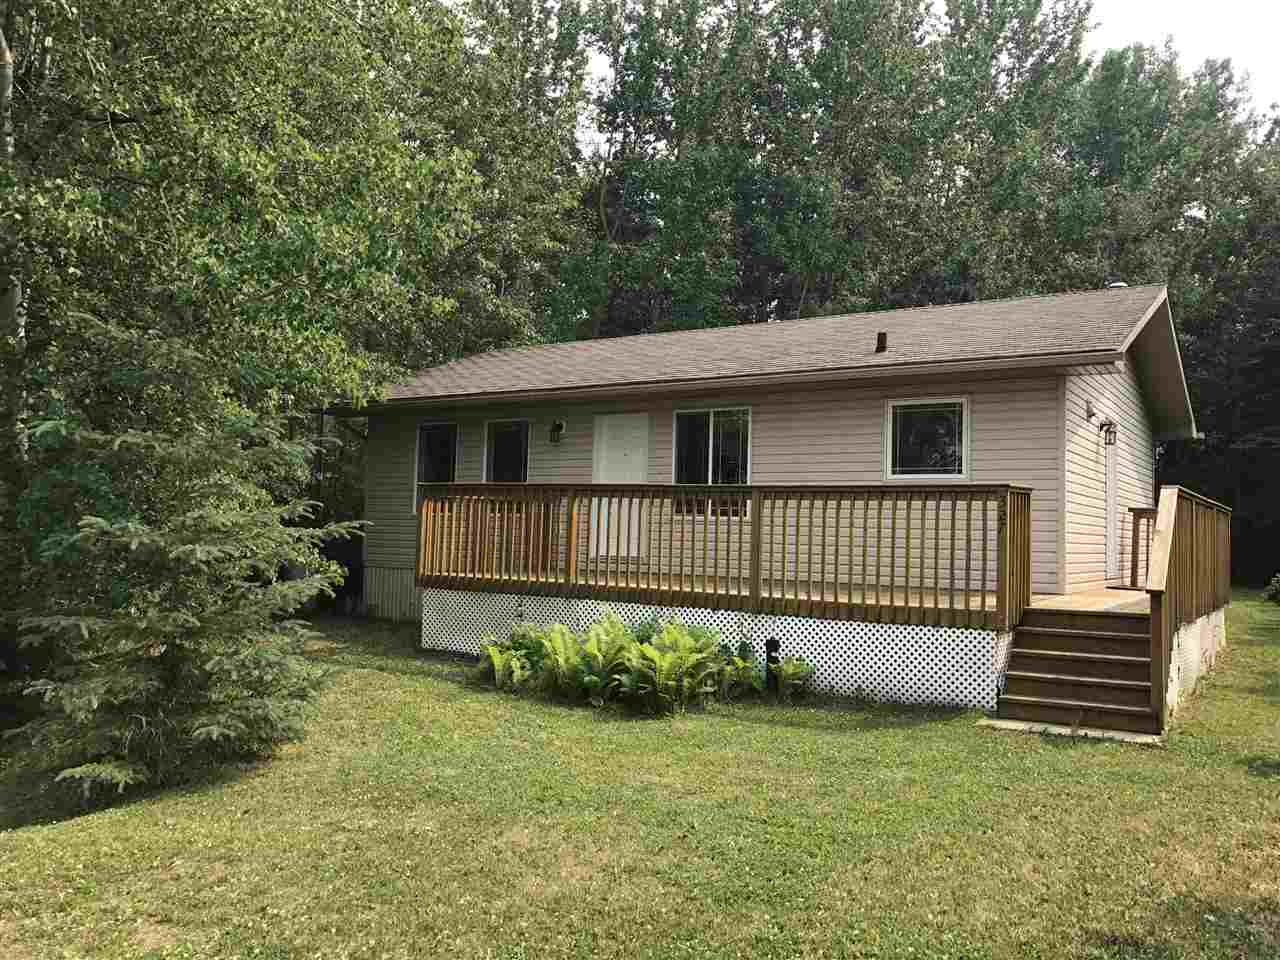 Main Photo: 327 3 Street: Rural Lac Ste. Anne County House for sale : MLS® # E4077303